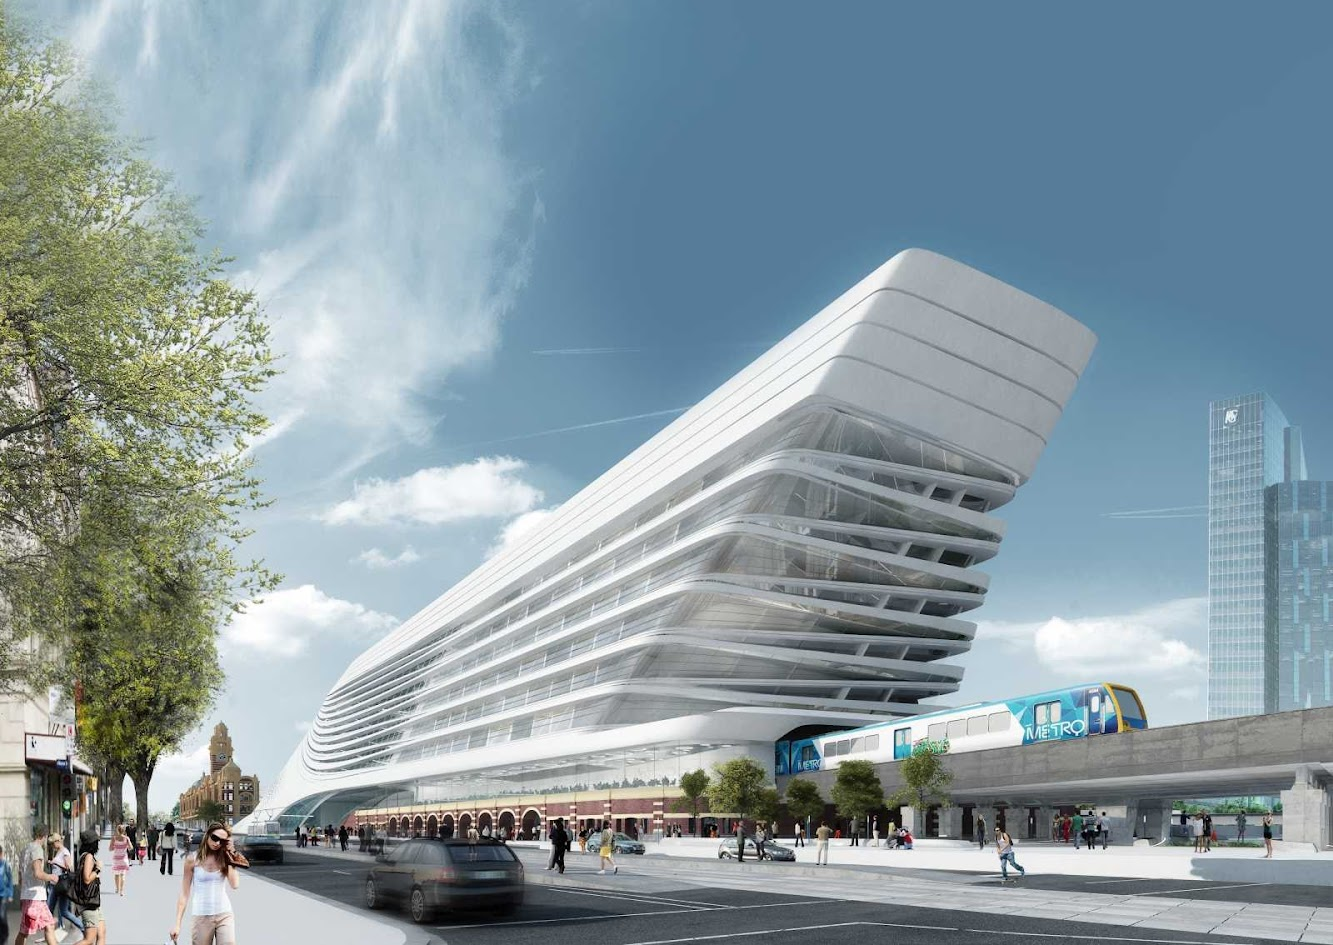 05-Flinders-Street-Station-Design-Competition-by-Zaha-Hadid+BVN-Architecture